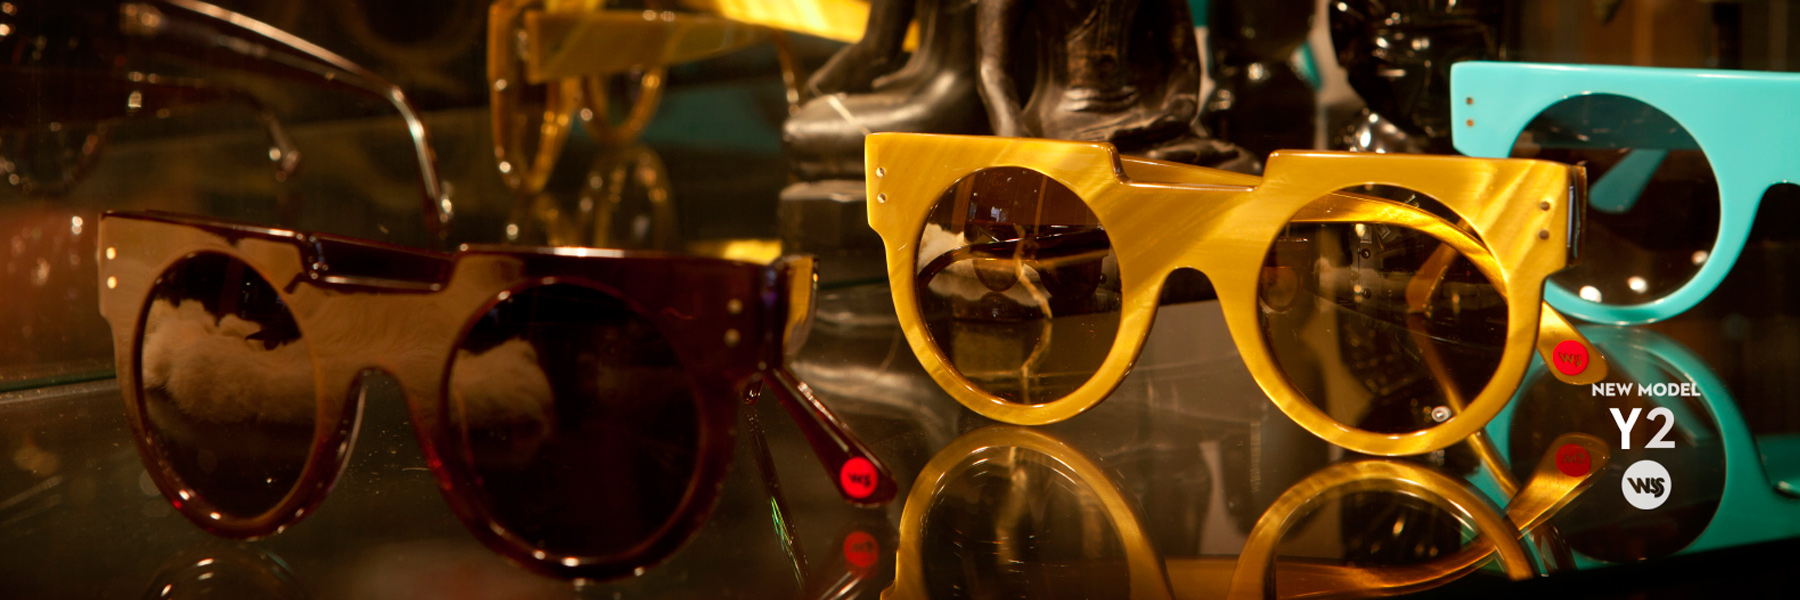 Wilde_Sunglasses_Y2_Handcrafted_Barcelona_Madrid_best_store_on-line_10.jpg